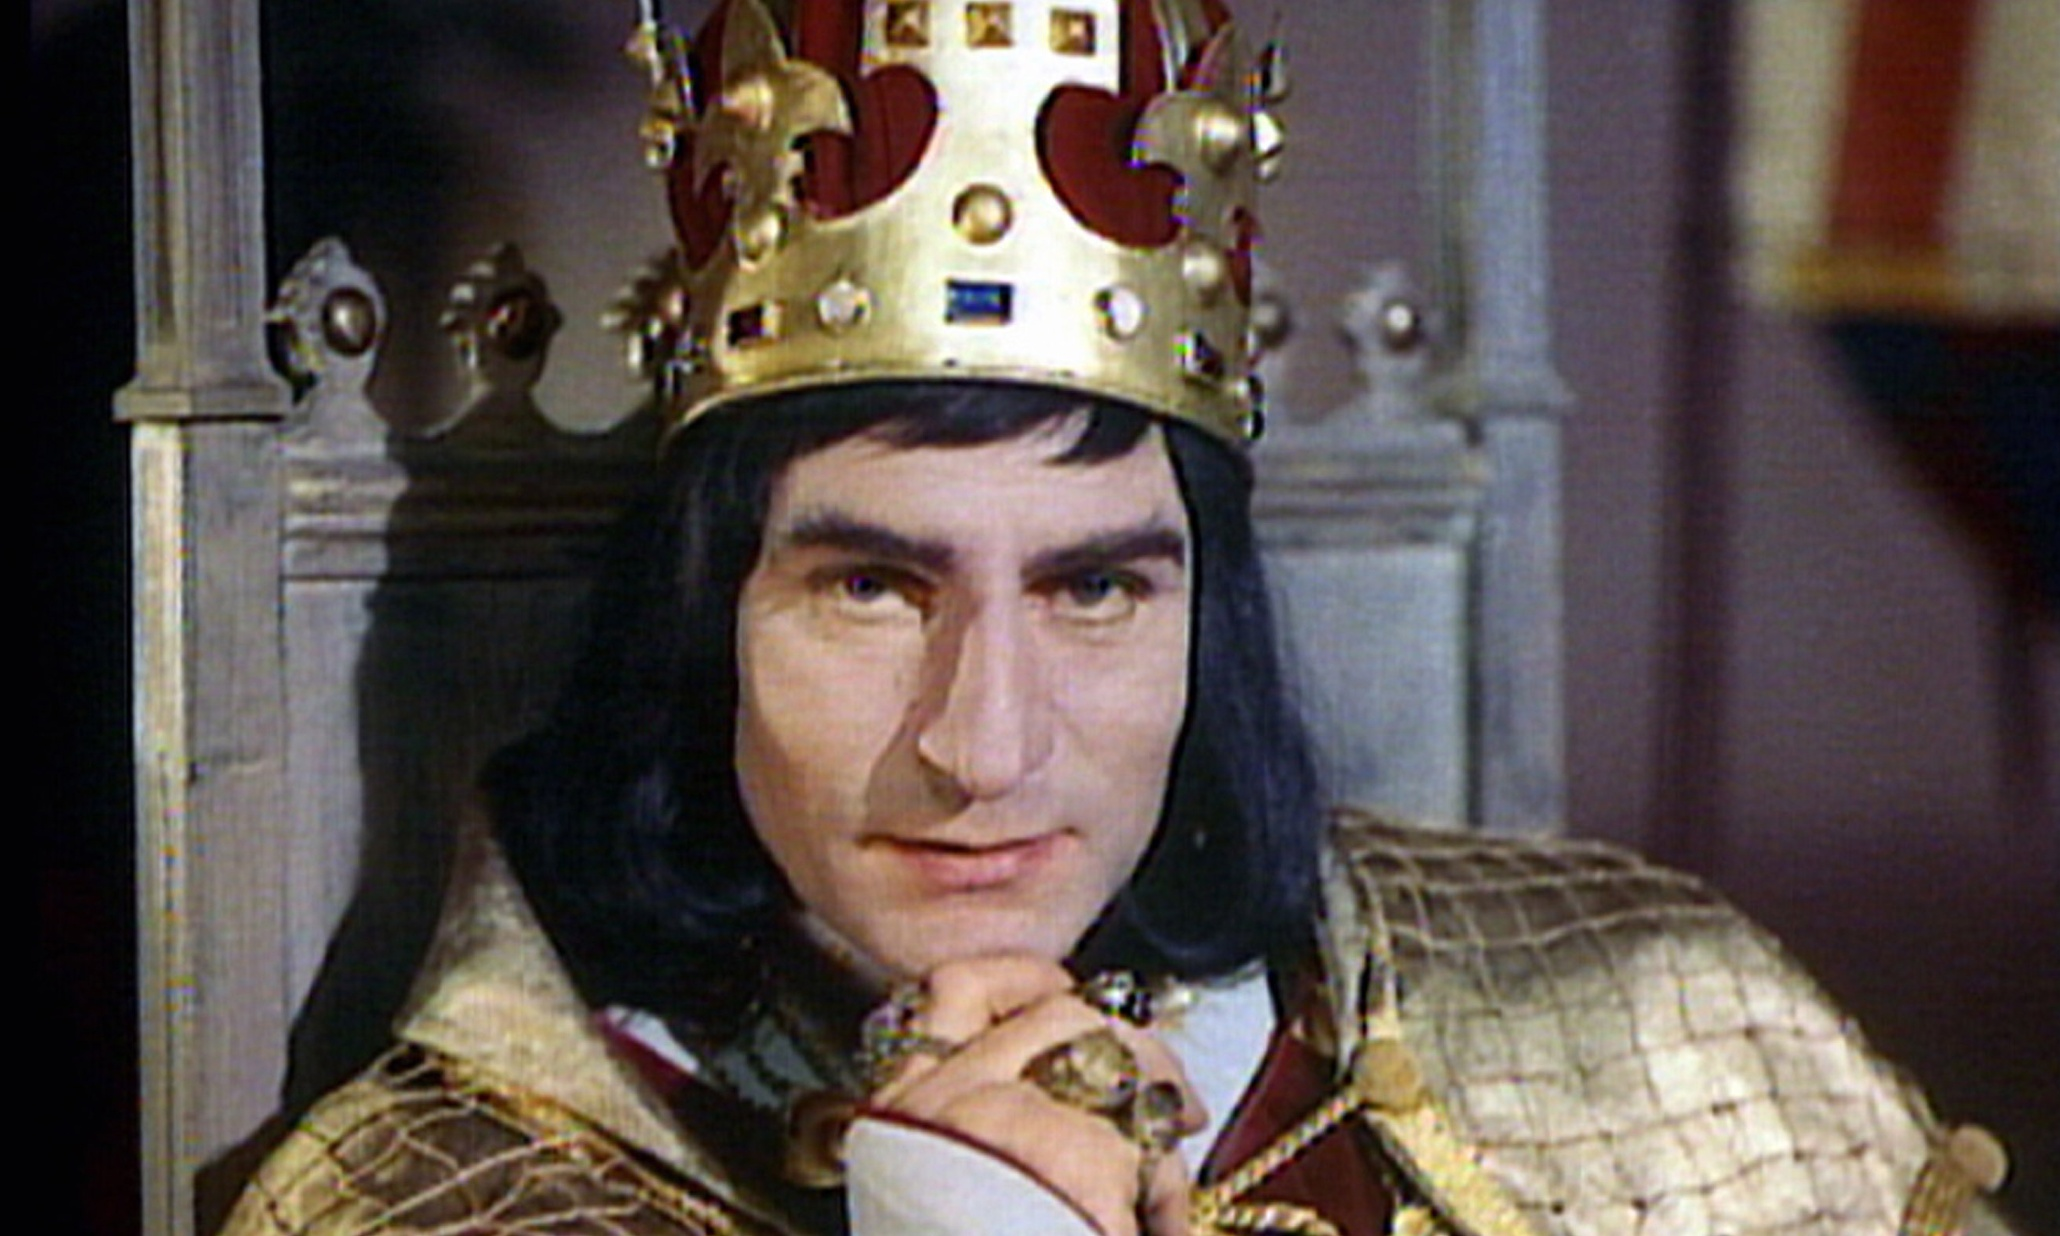 House Design Games On Facebook Richard Iii Laurence Olivier S Melodramatic Baddie Is